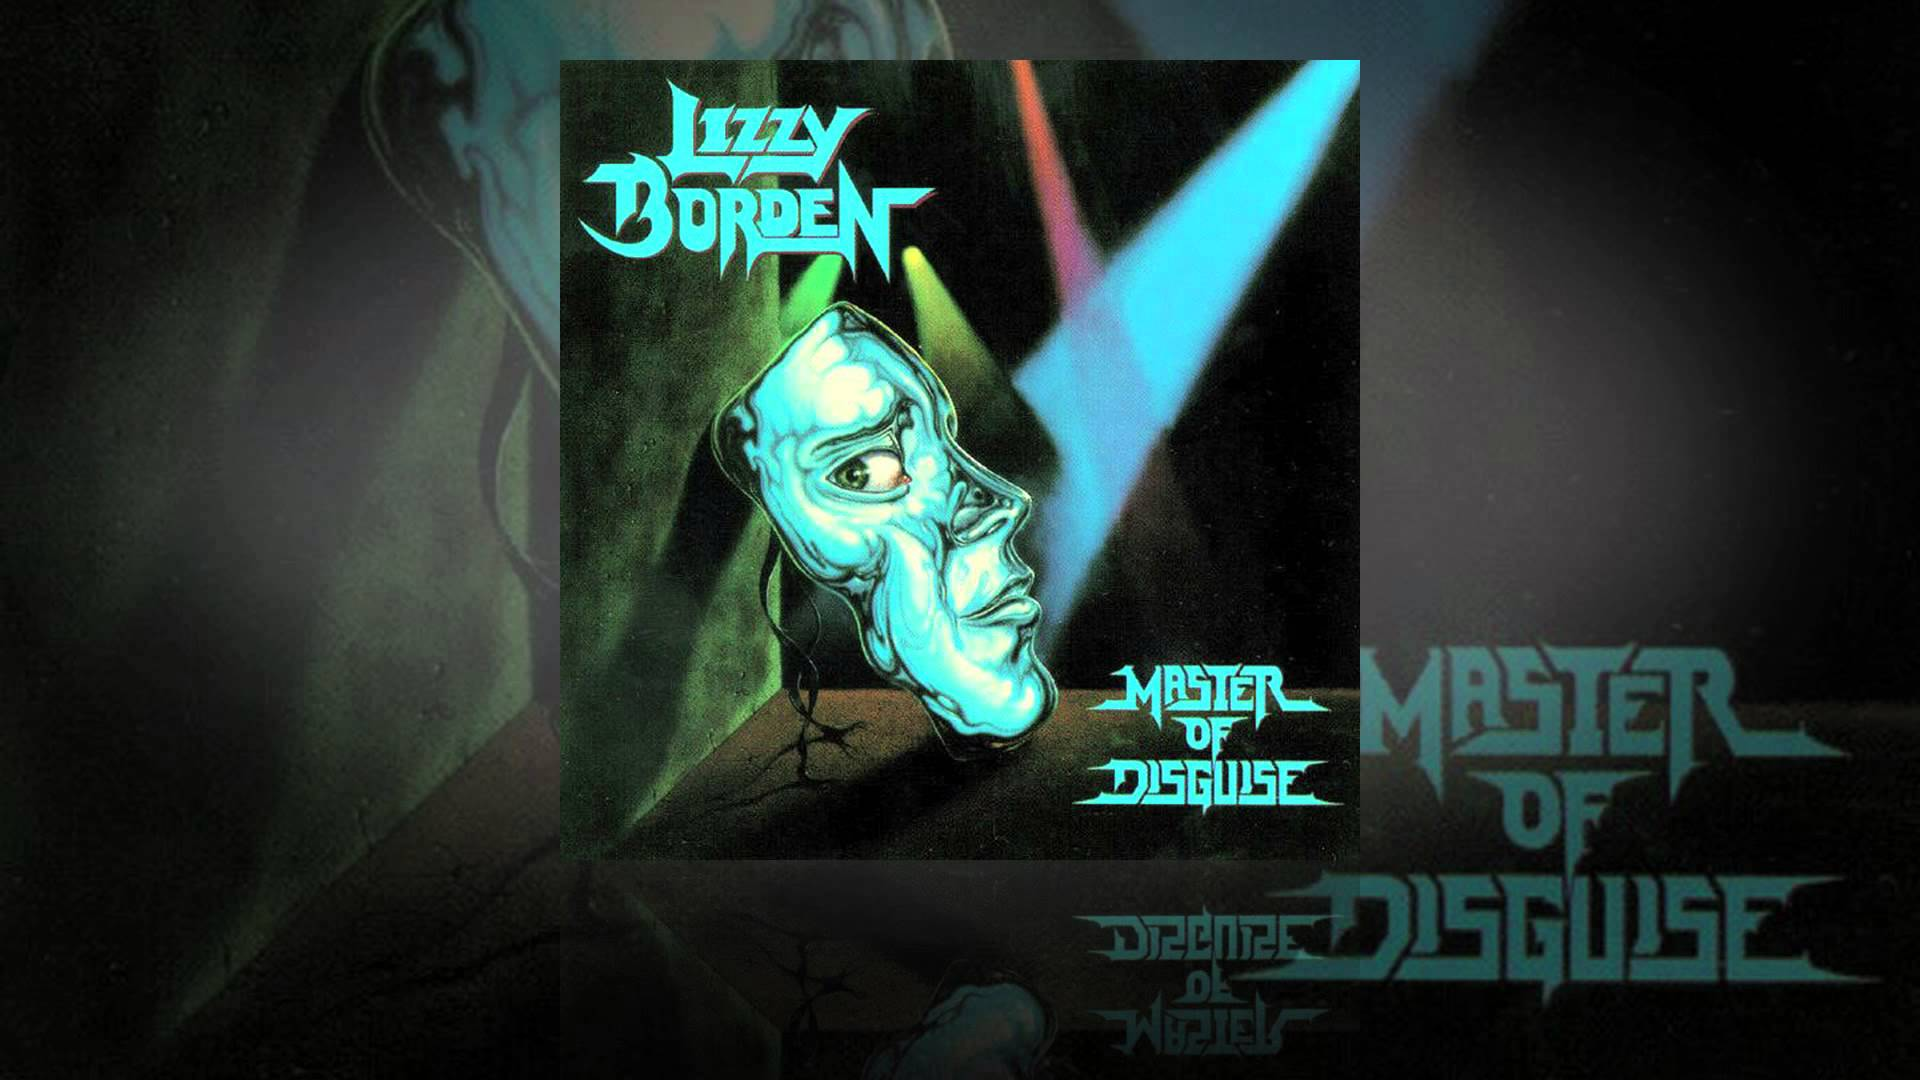 Lizzy Borden 'Master of Disguise'